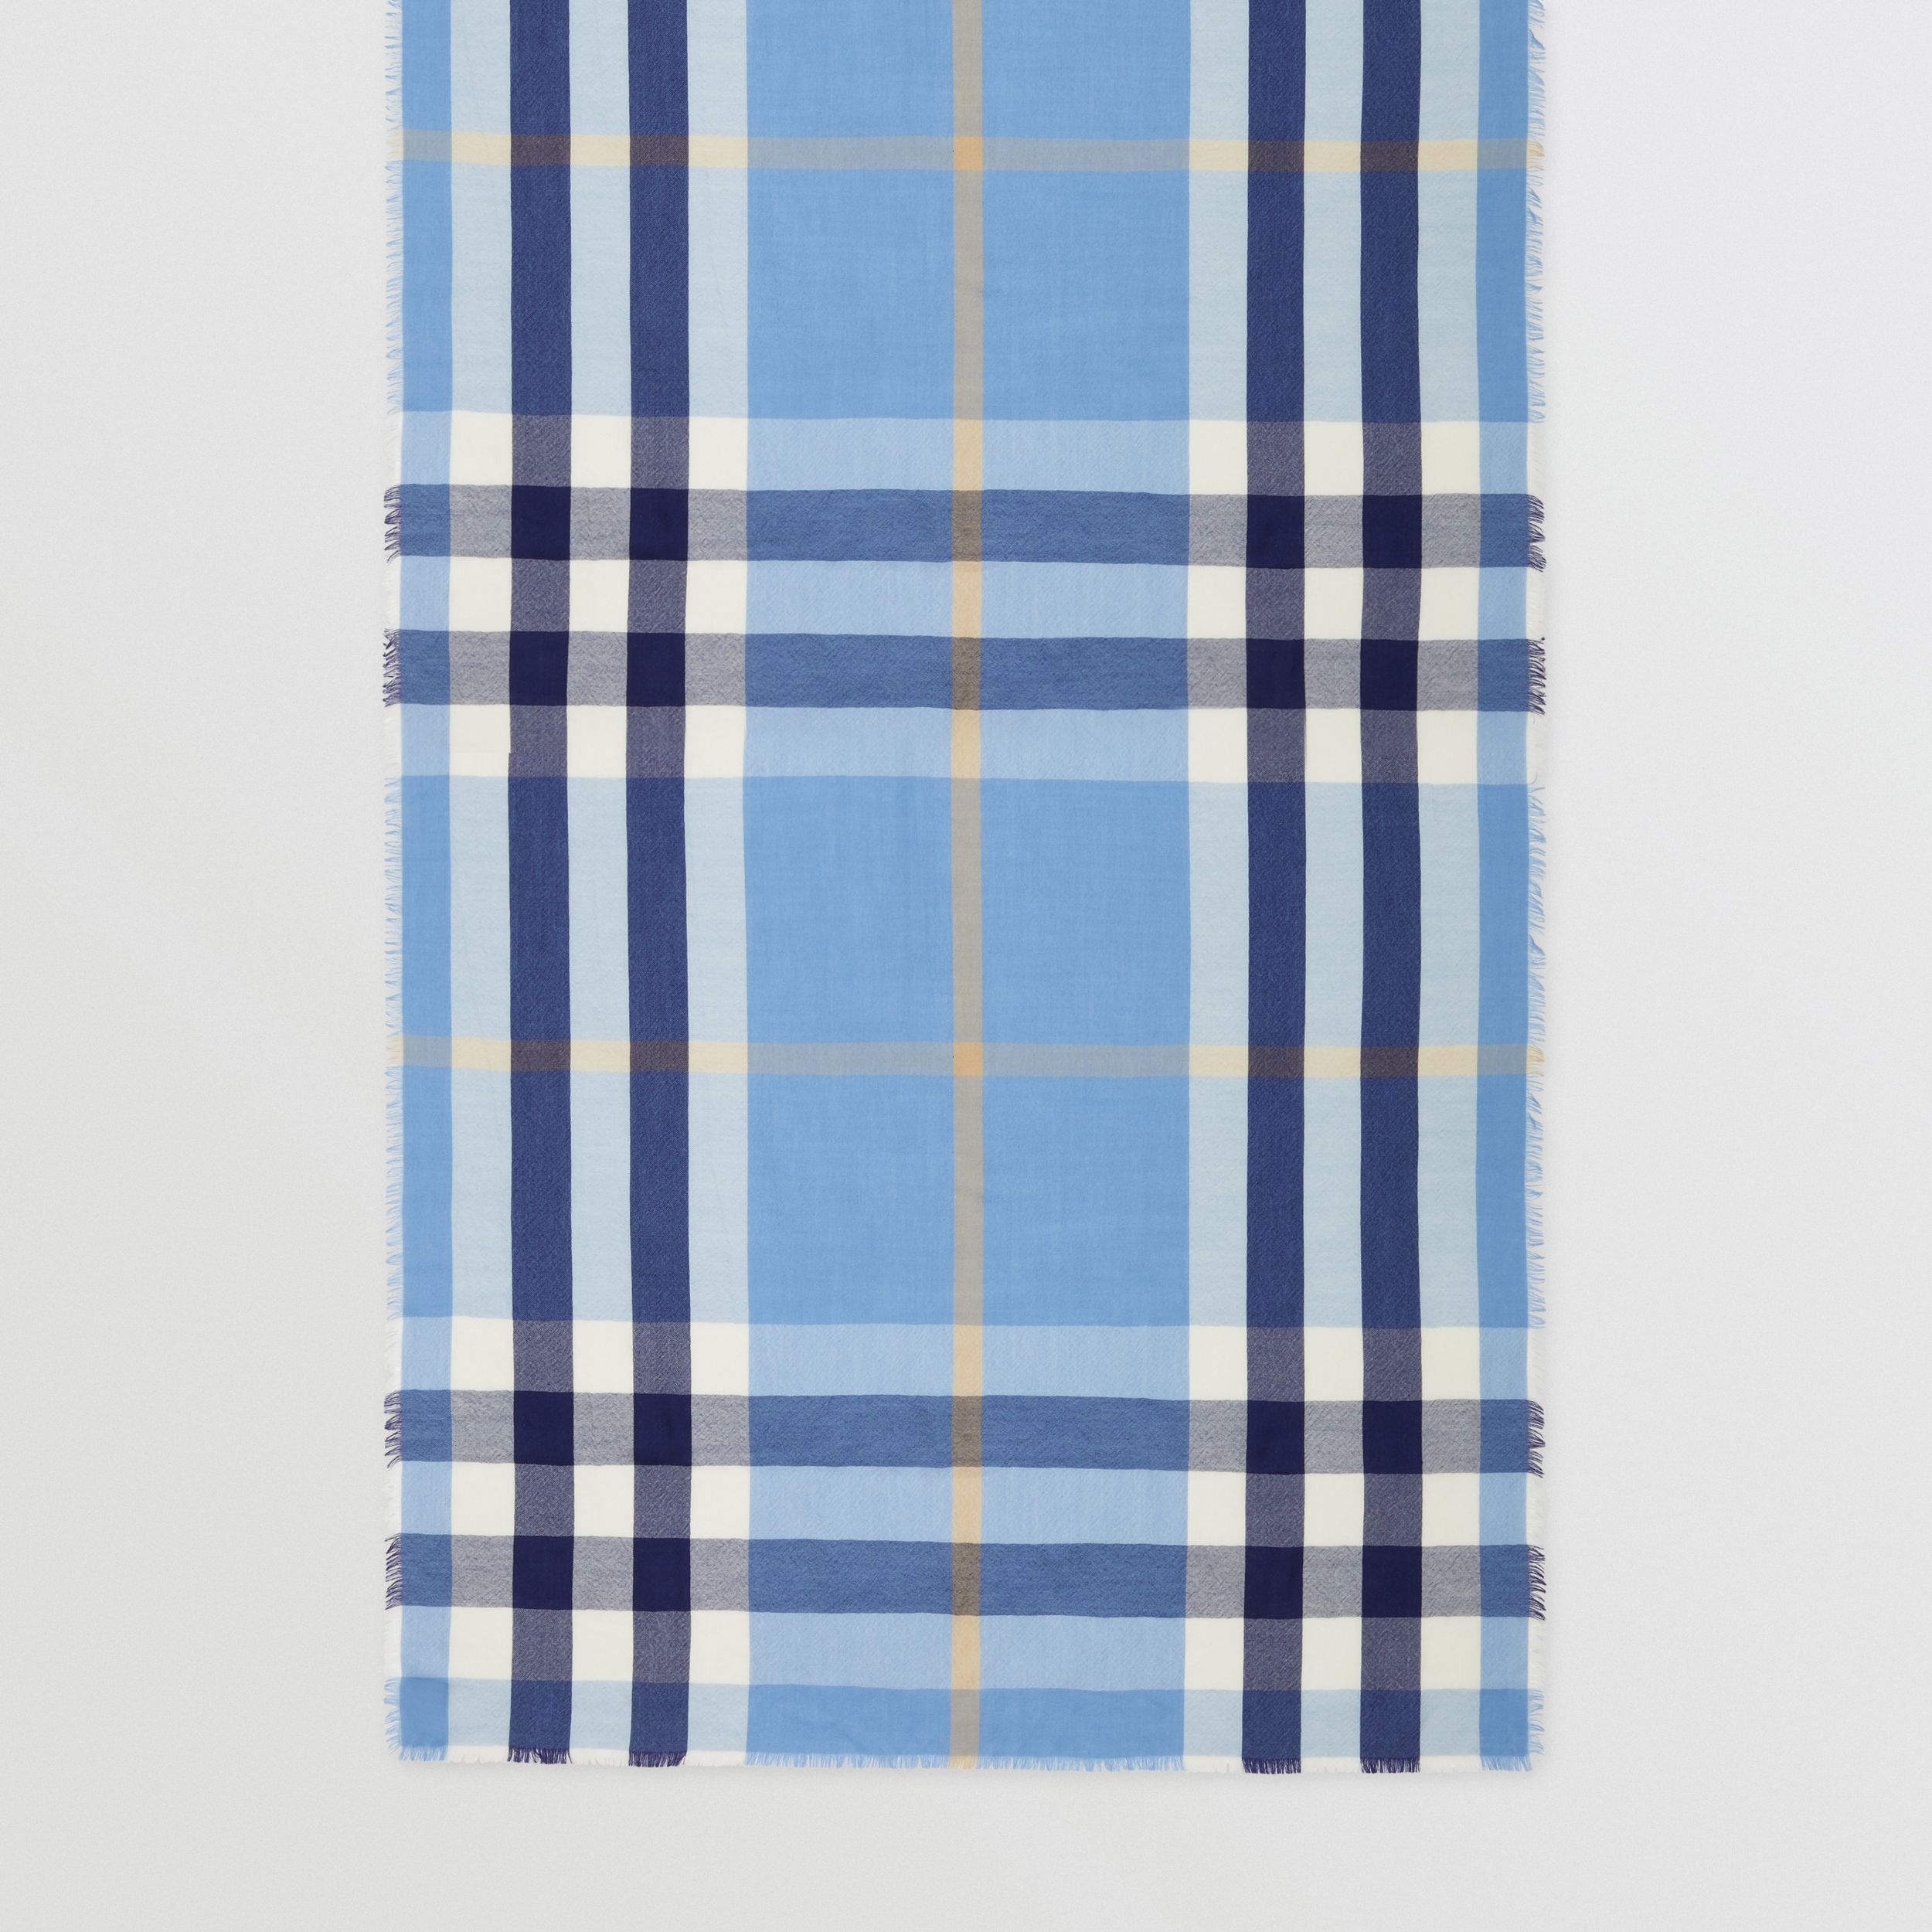 Lightweight Check Cashmere Scarf in English Bluebell | Burberry - 4